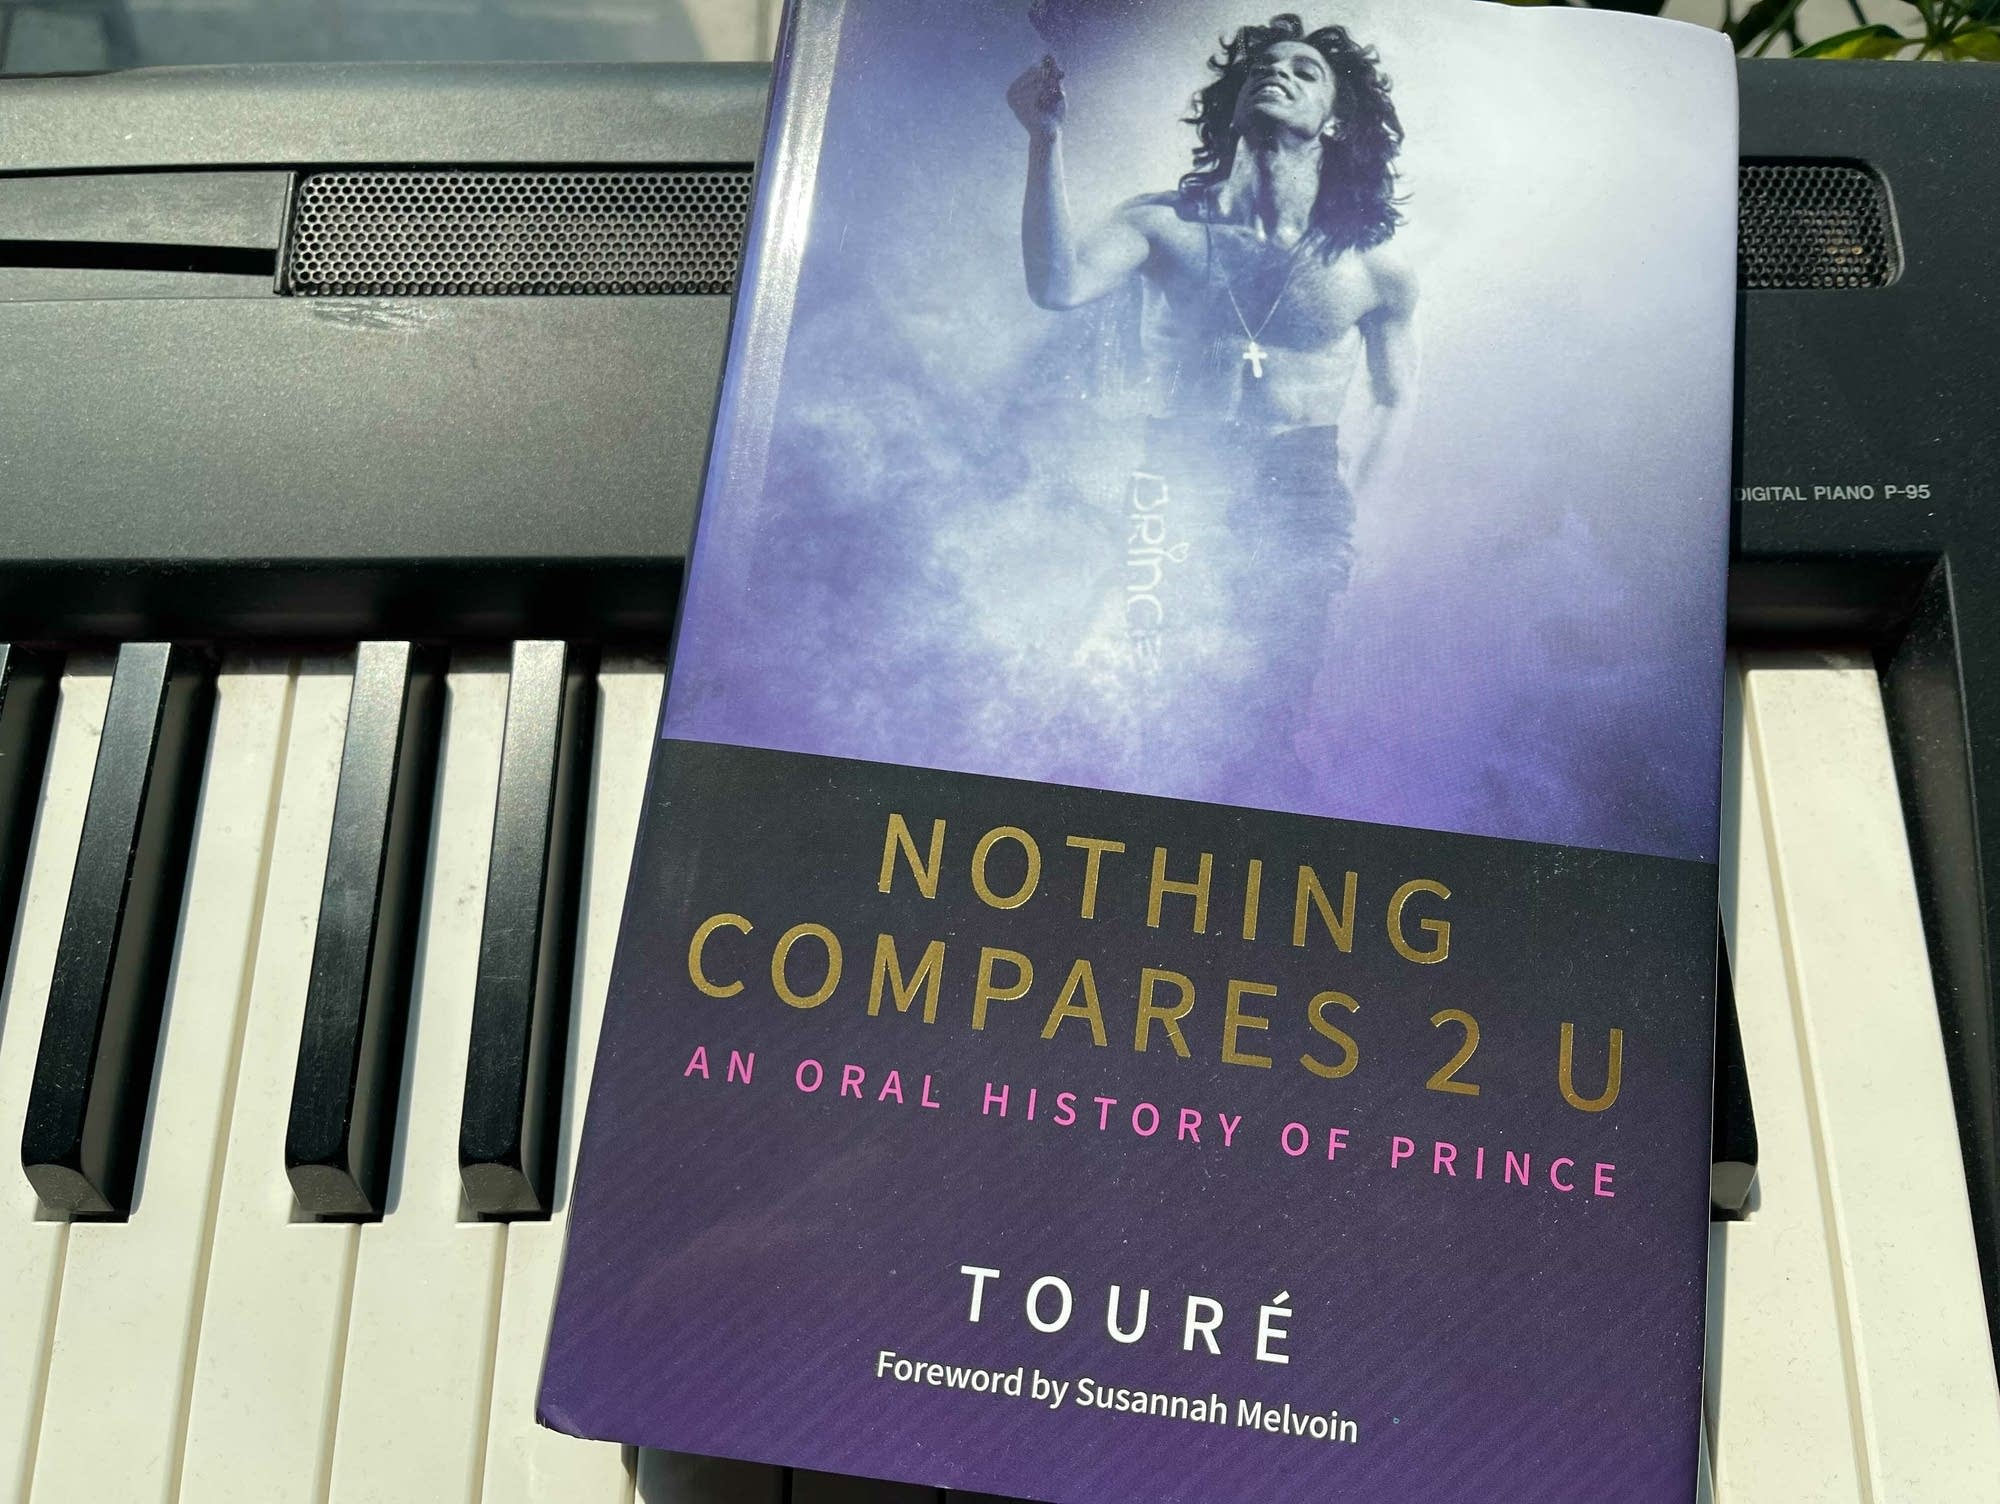 Book on keyboard: 'Nothing Compares 2 U' by Toure.